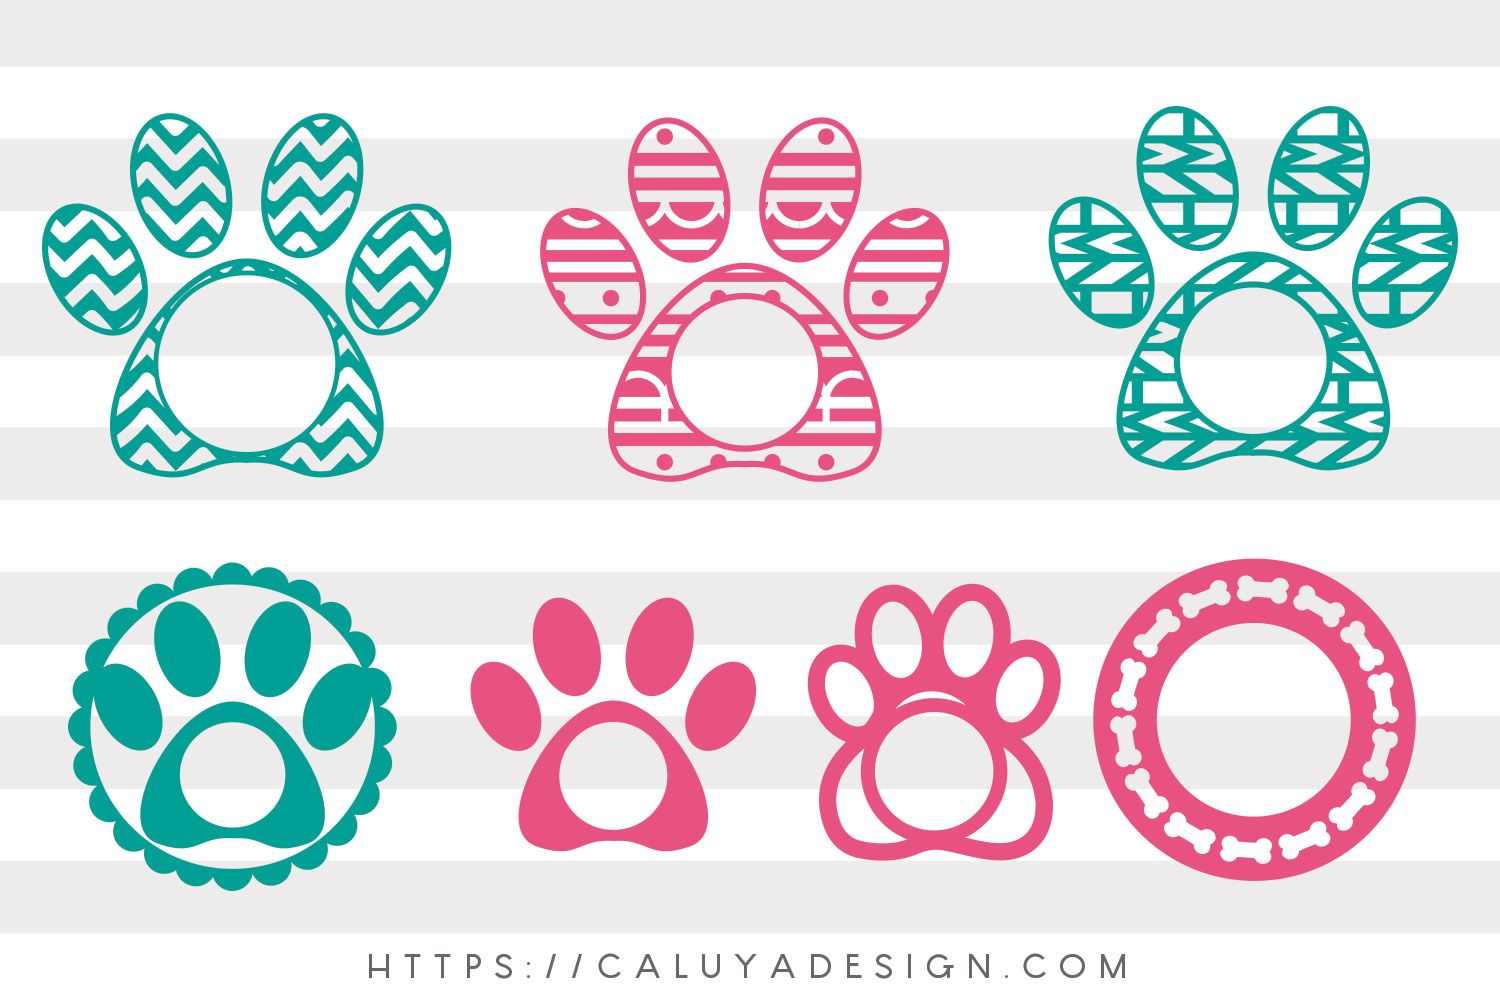 Free Dog Paw Monogram Svg Png Eps Dxf By Caluya Design Free Monogram Fonts Monogram Svg Free Svg